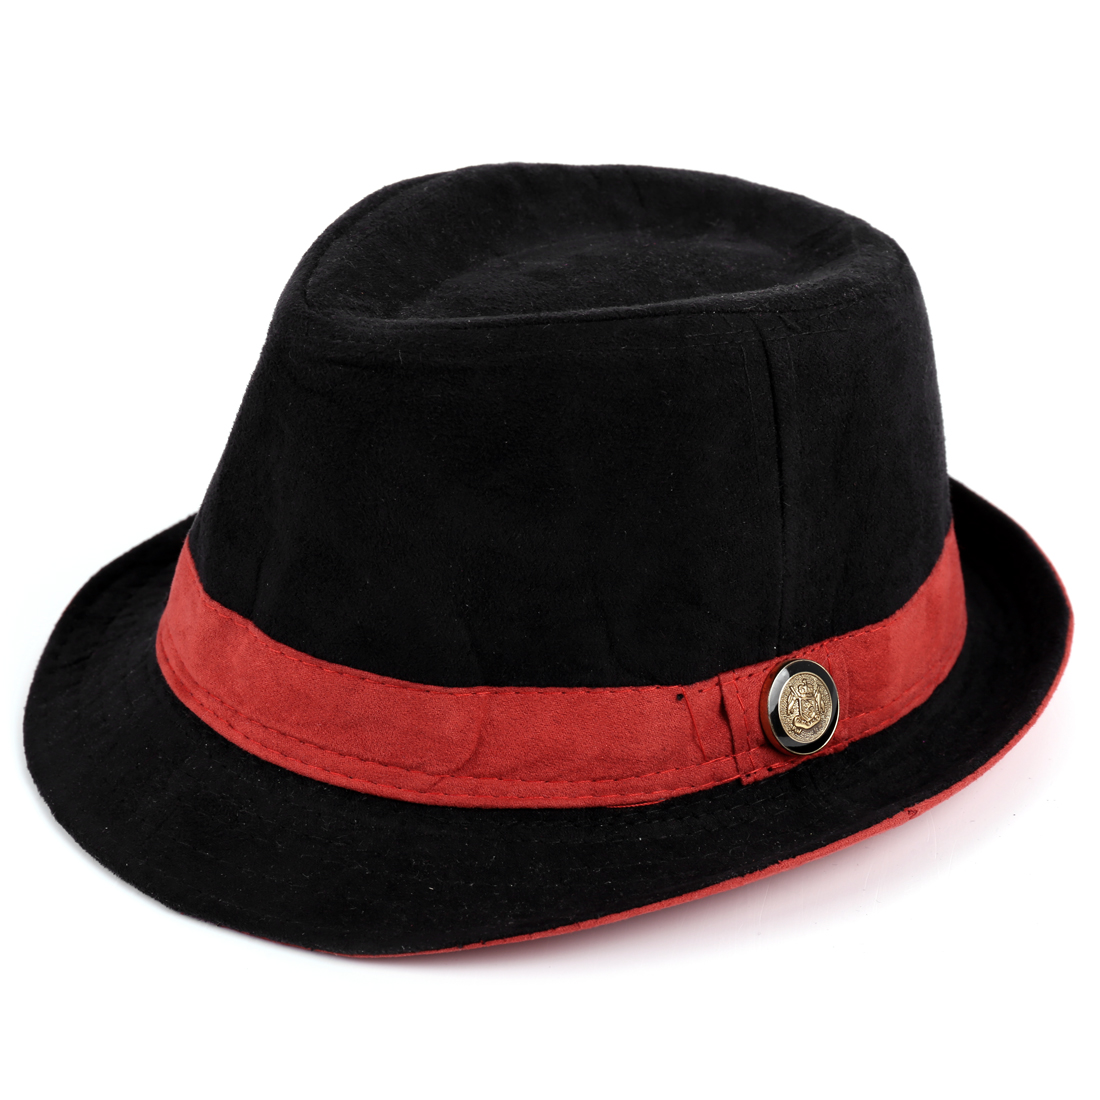 Kids Rolled Brim Patchwork Button Detail Cowboy Hat Black Brick Red